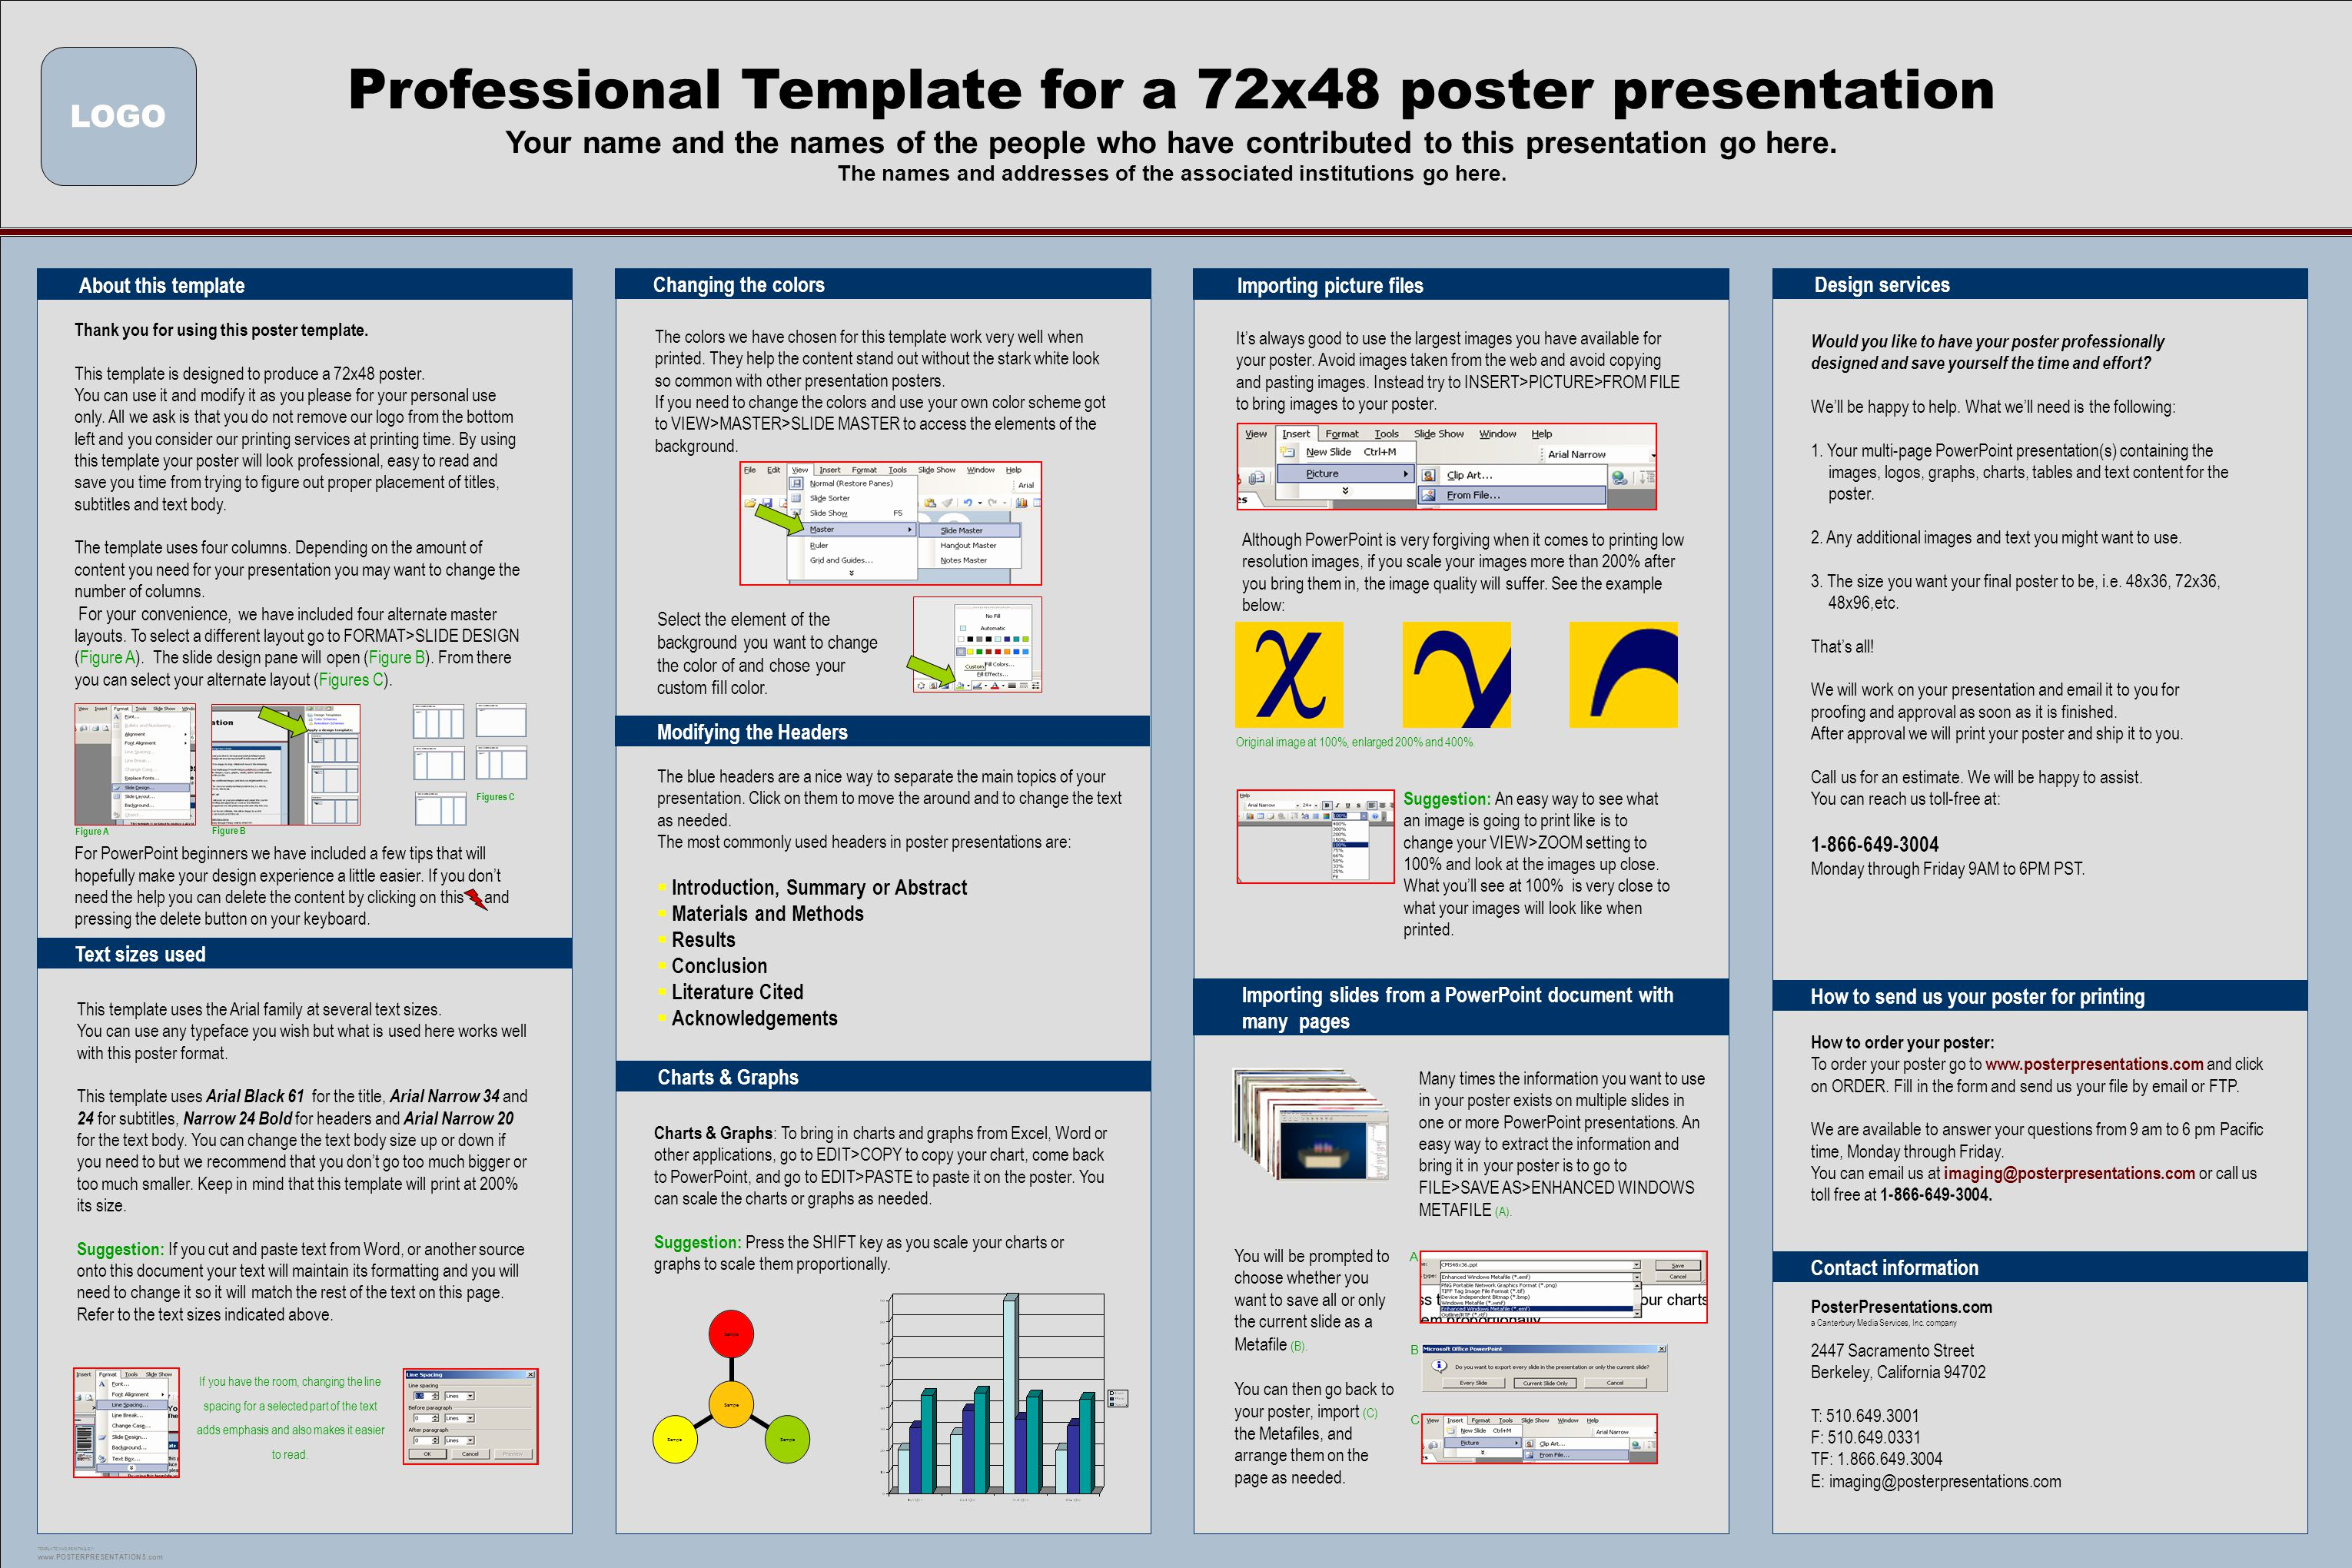 Free Powerpoint Poster Templates Beautiful Professional Template for A 72x48 Poster Presentation